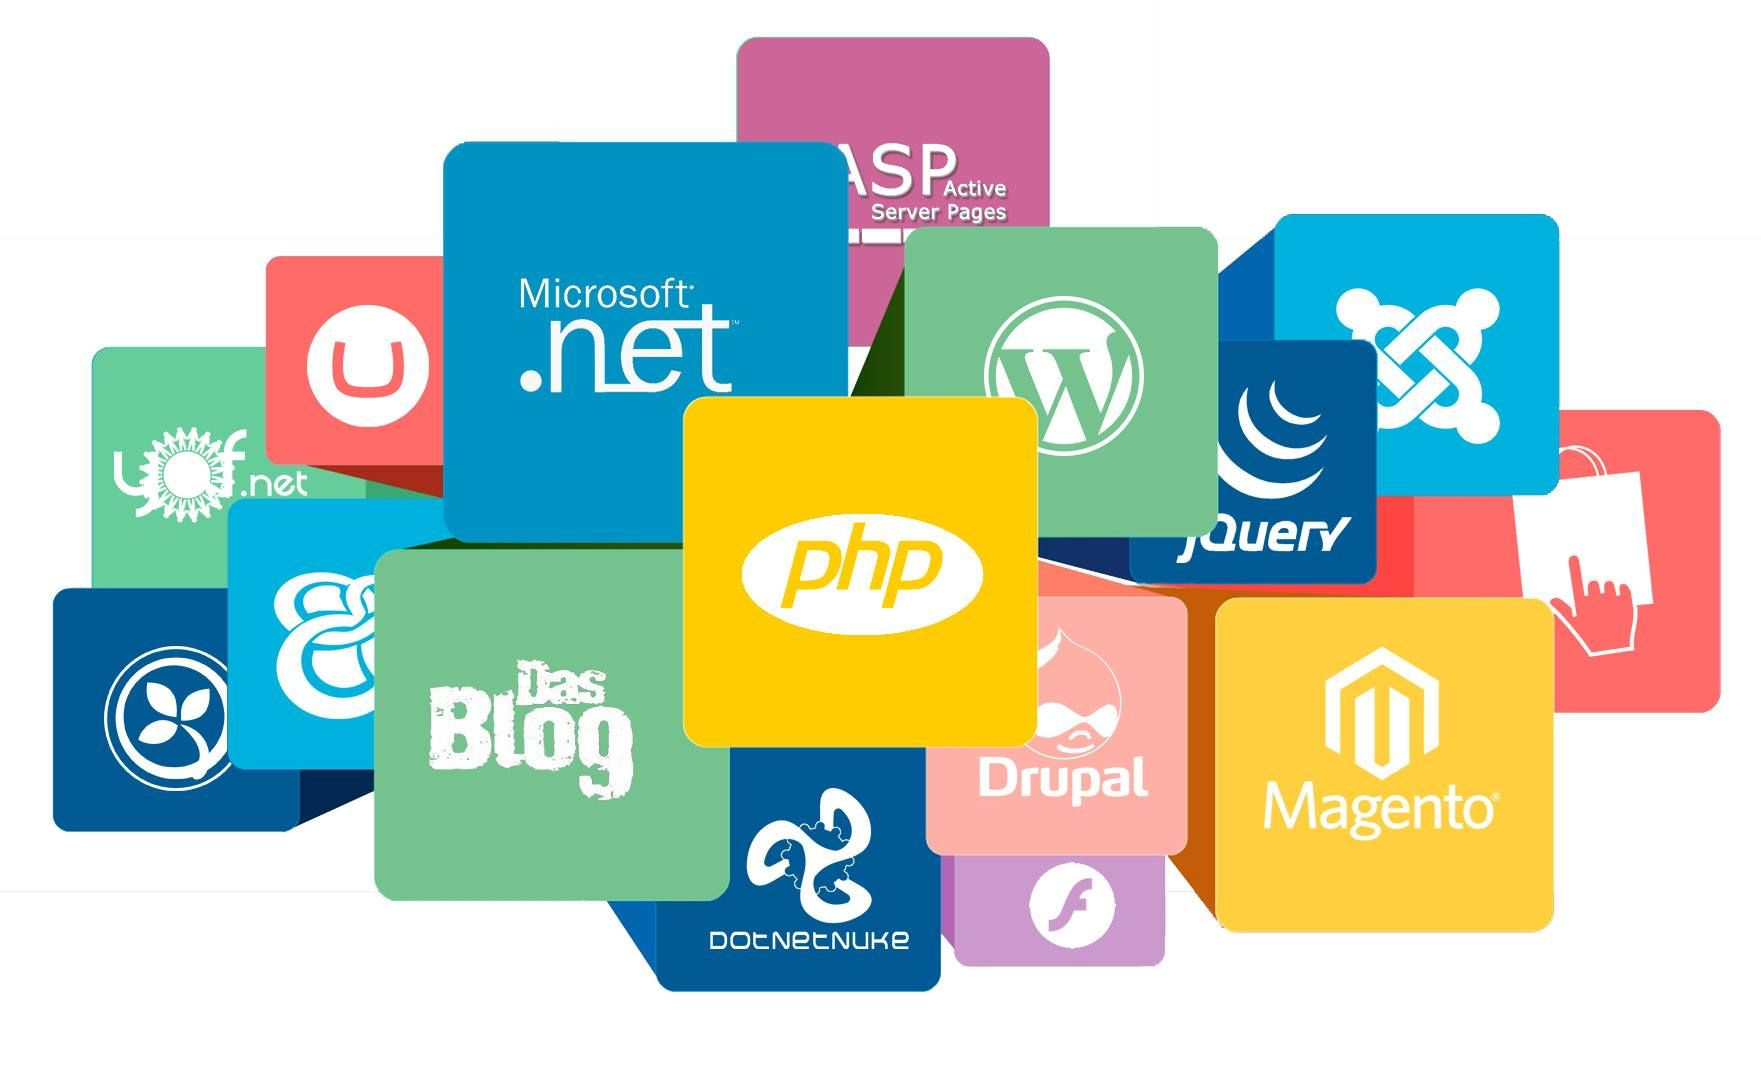 PHP, ANDROID, IOS, ANGULAR, SEO, WORDPRESS